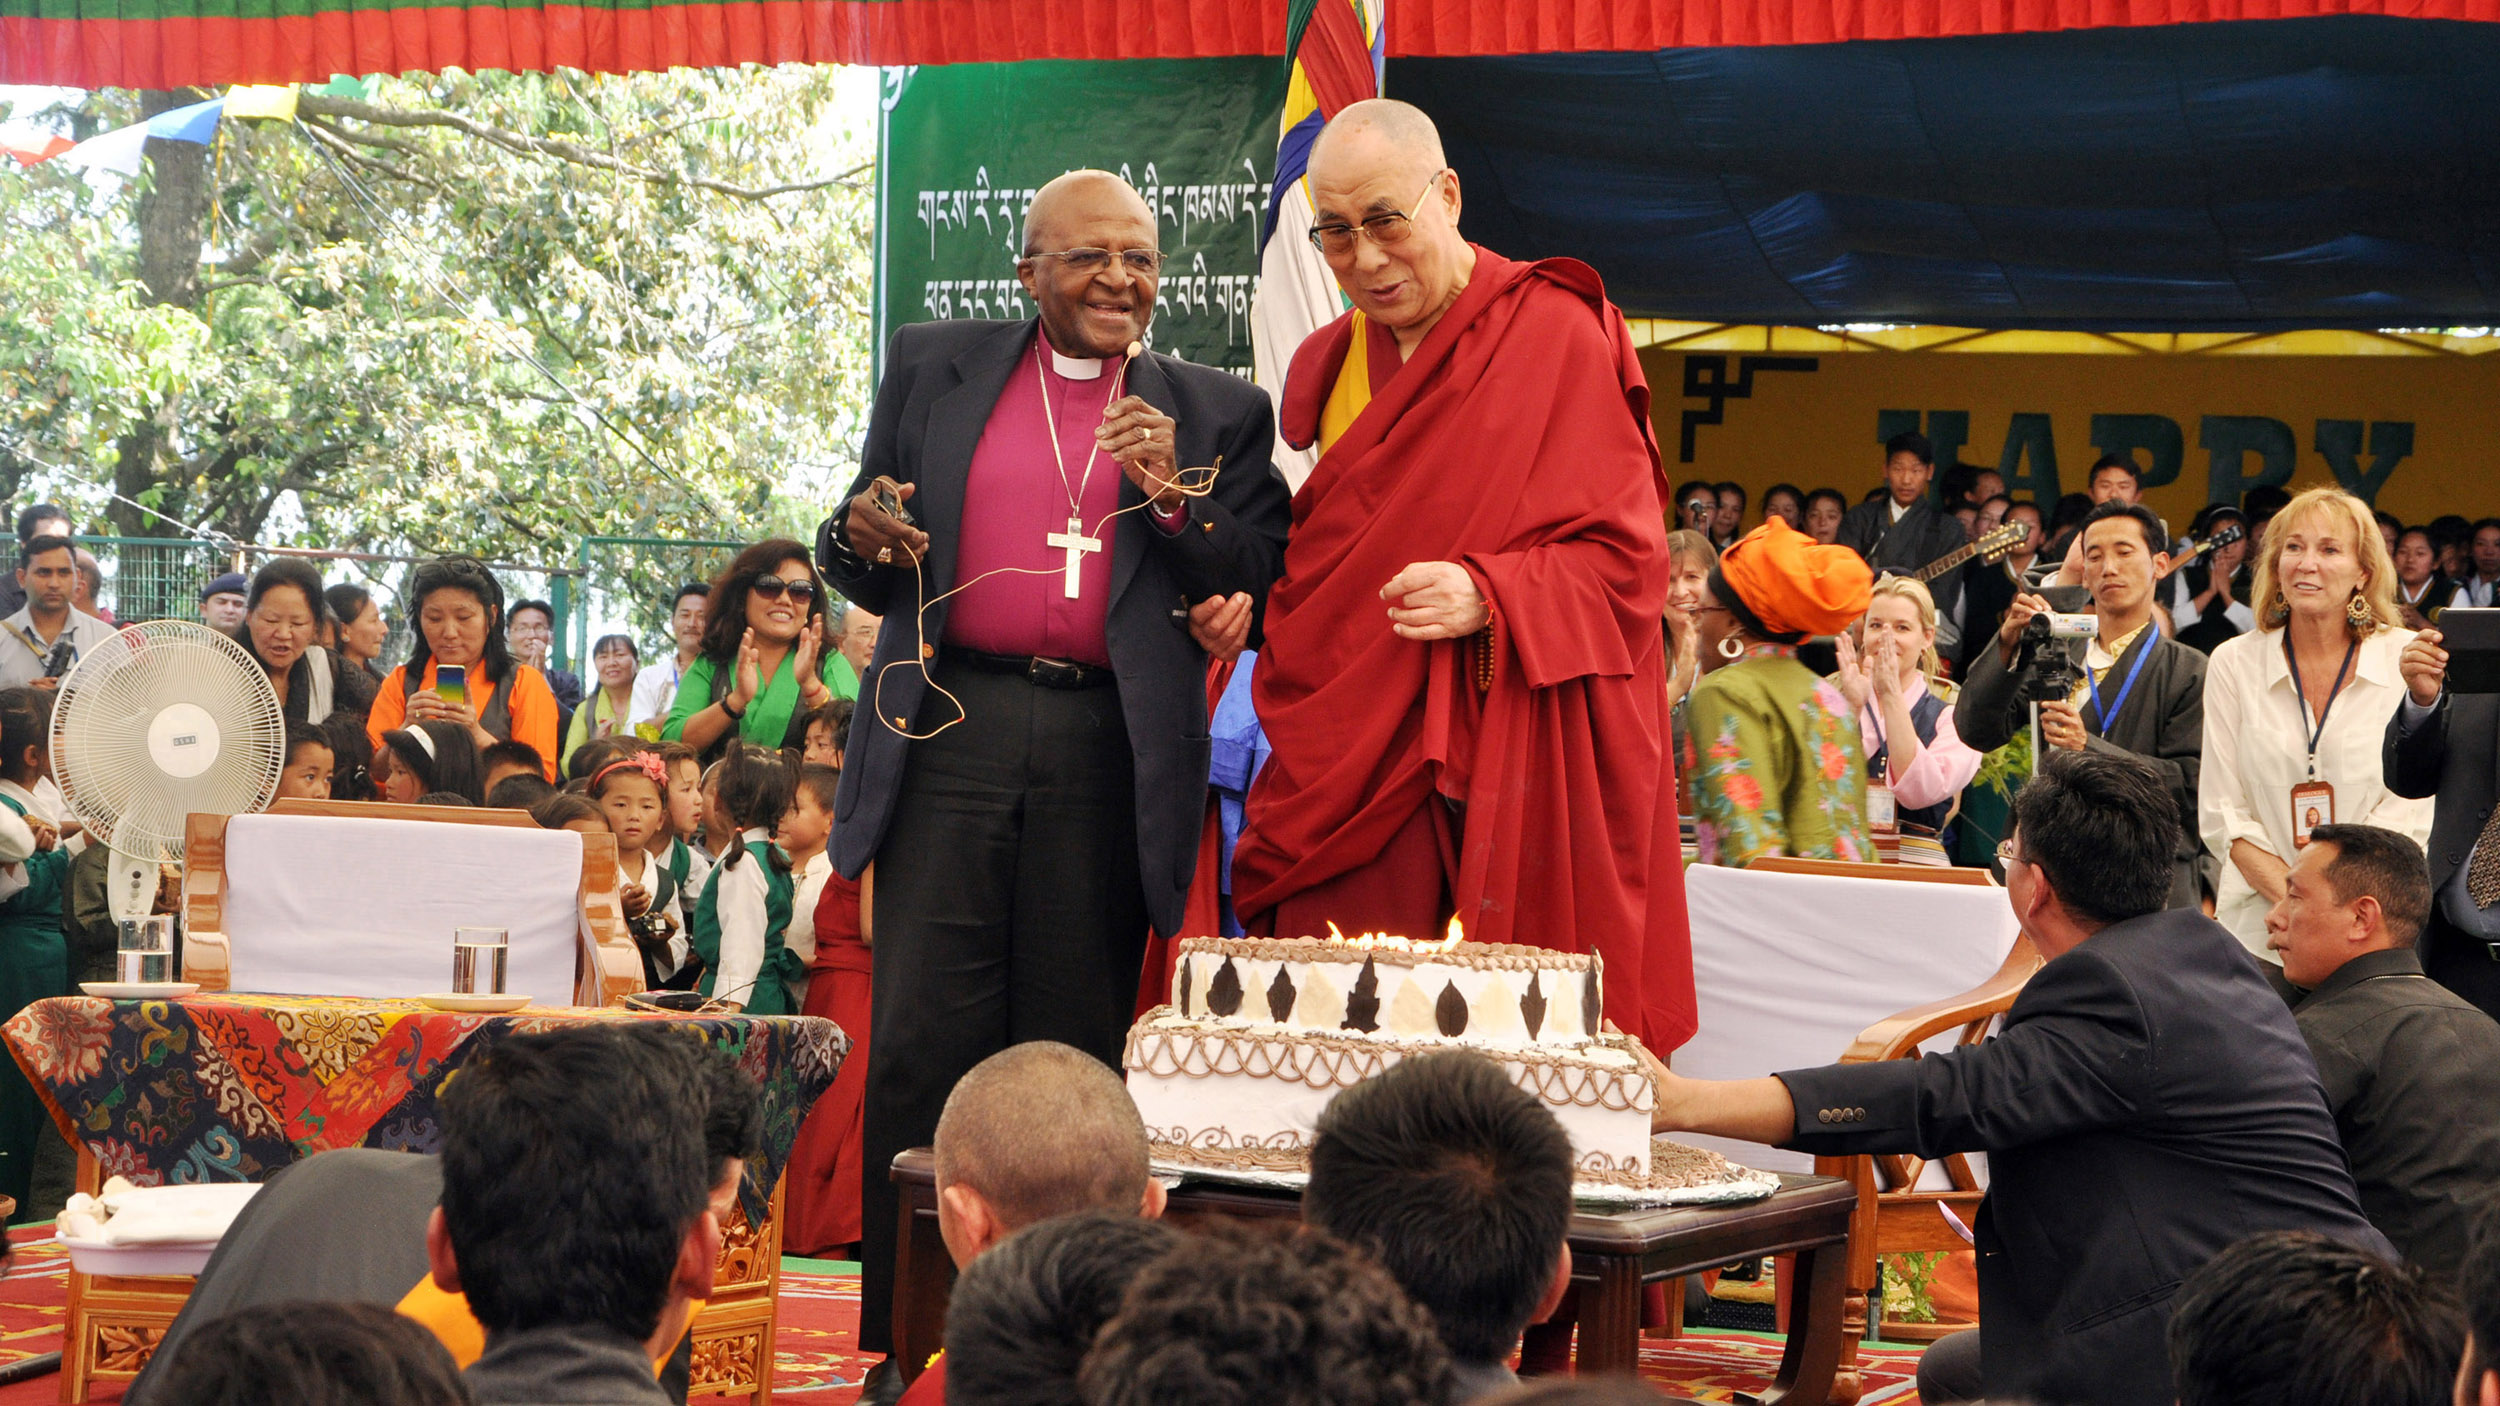 Spiritual leader Dalai Lama to blow out candles on his birthday cake as retired Archbishop Desmond Tutu looks on at the Tibetan Childrens Village School in Dharmsala, India, on April 23, 2015.